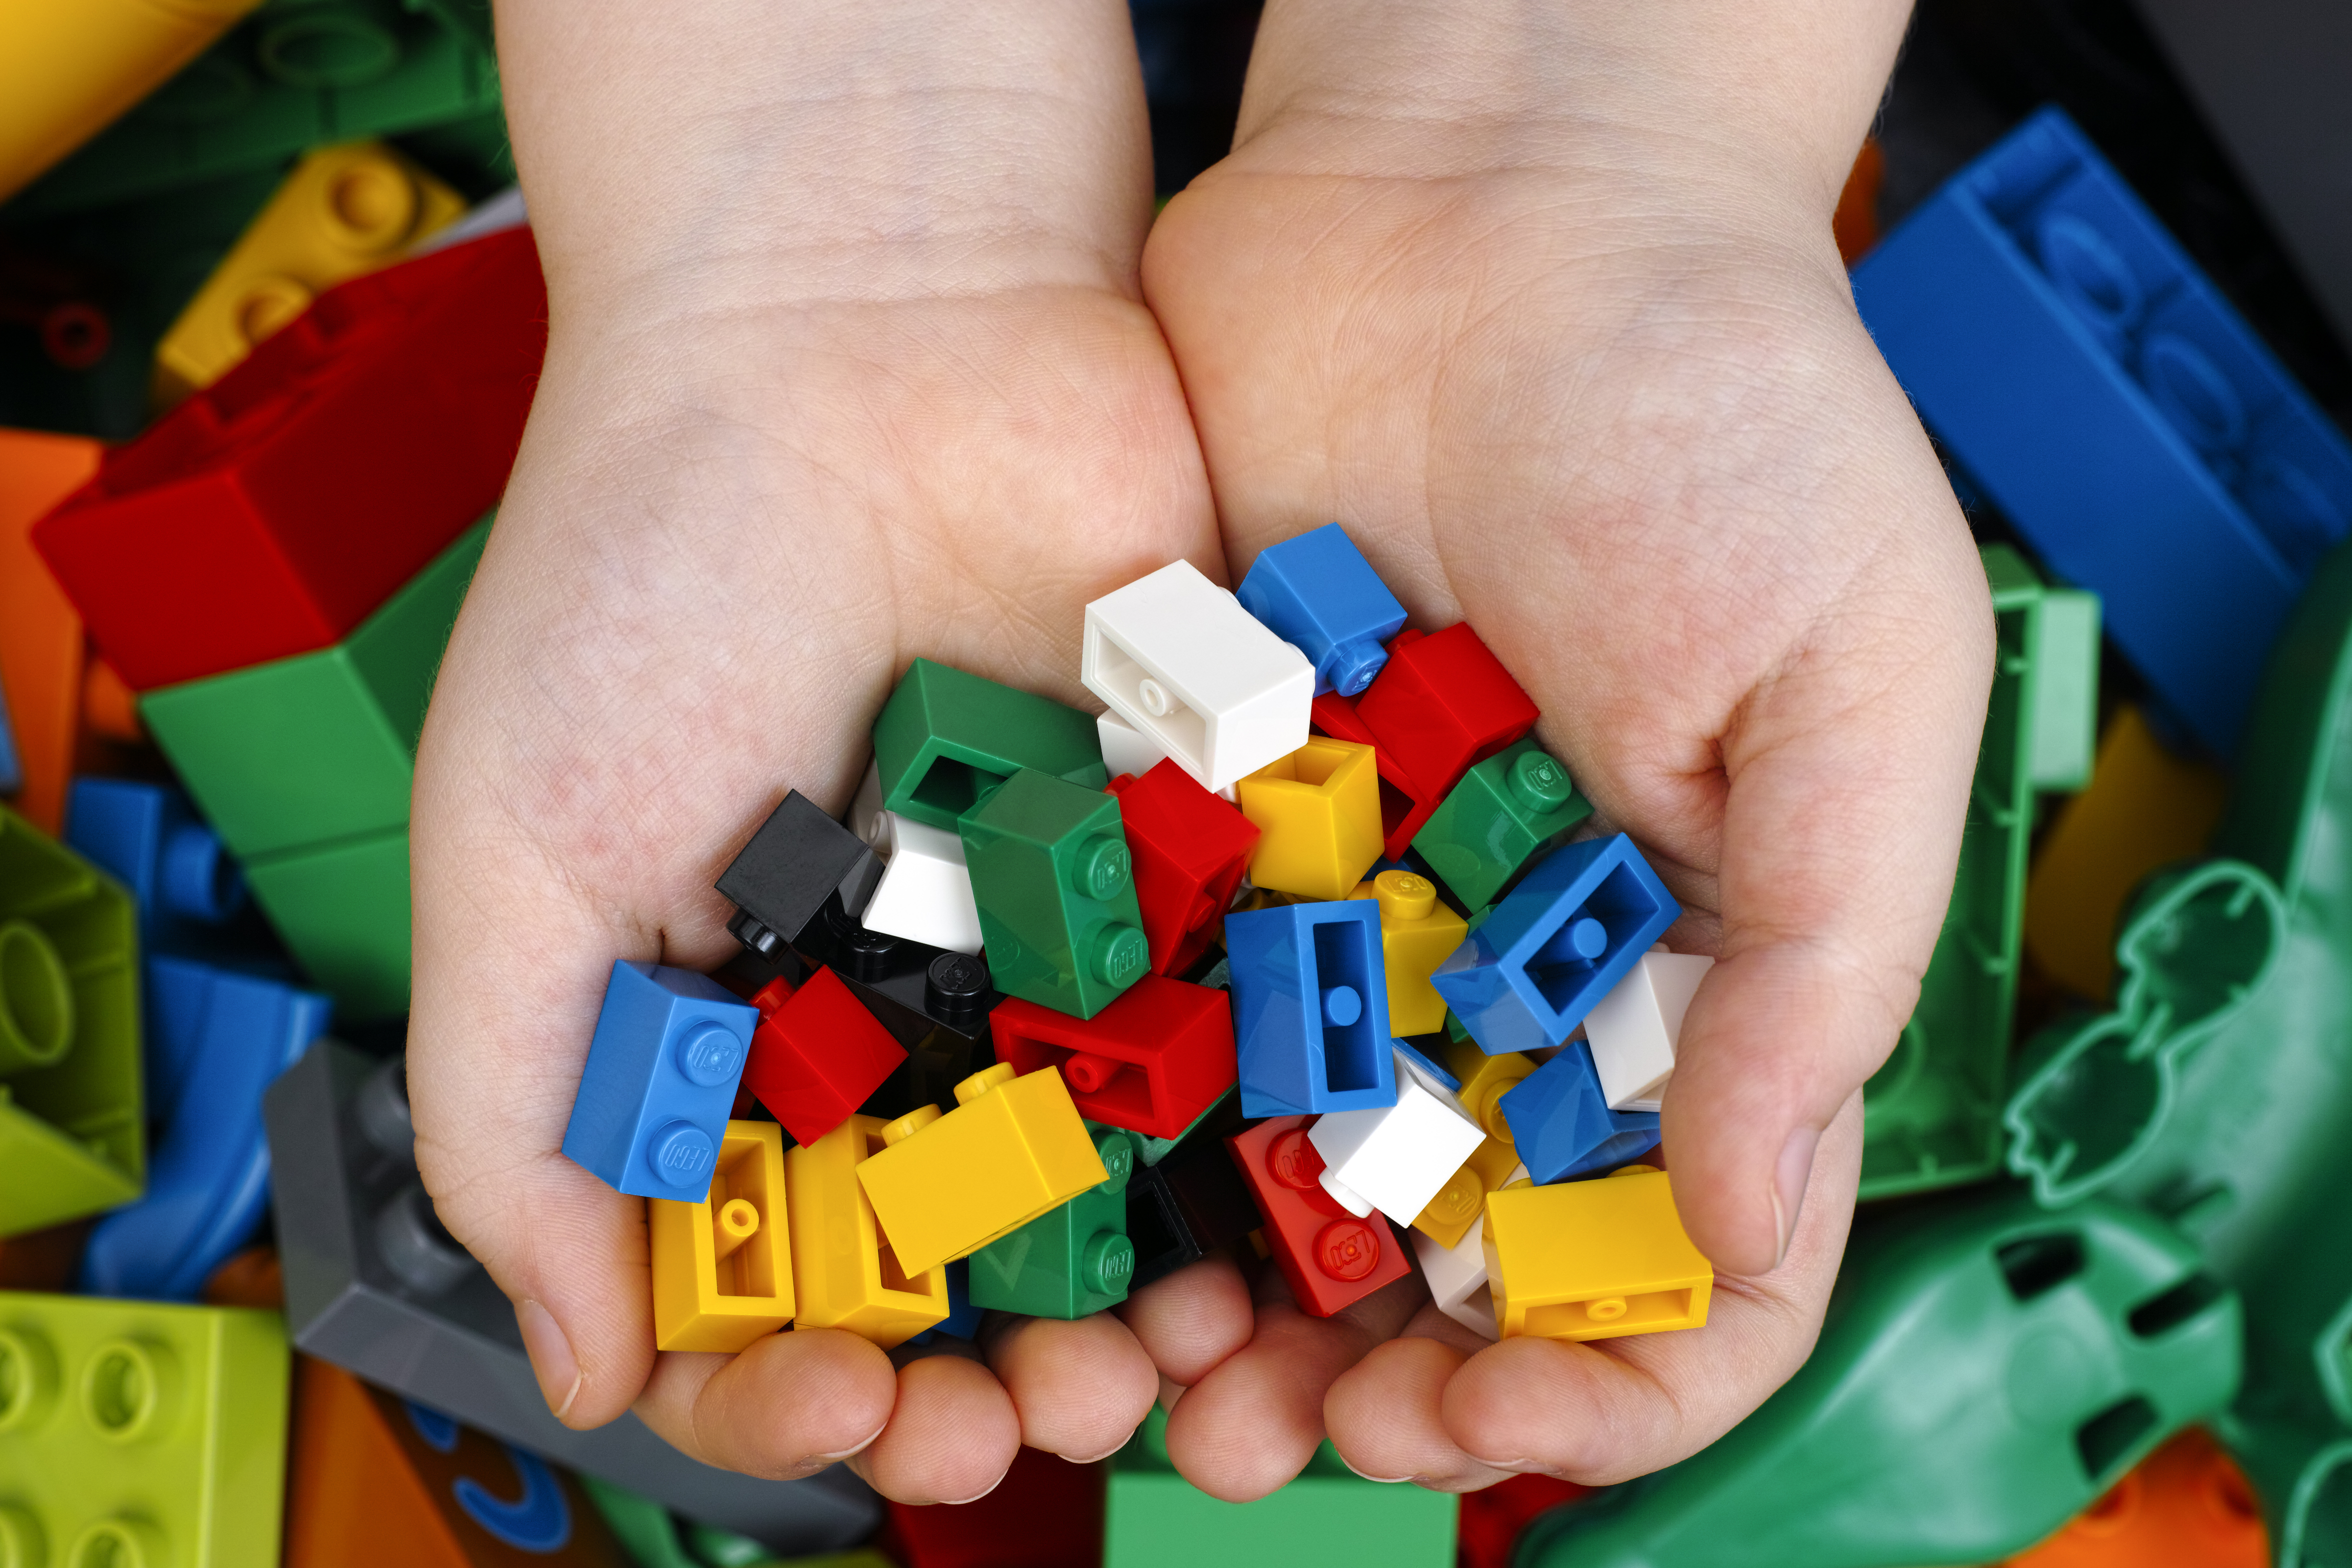 Image of hands holding LEGOs.